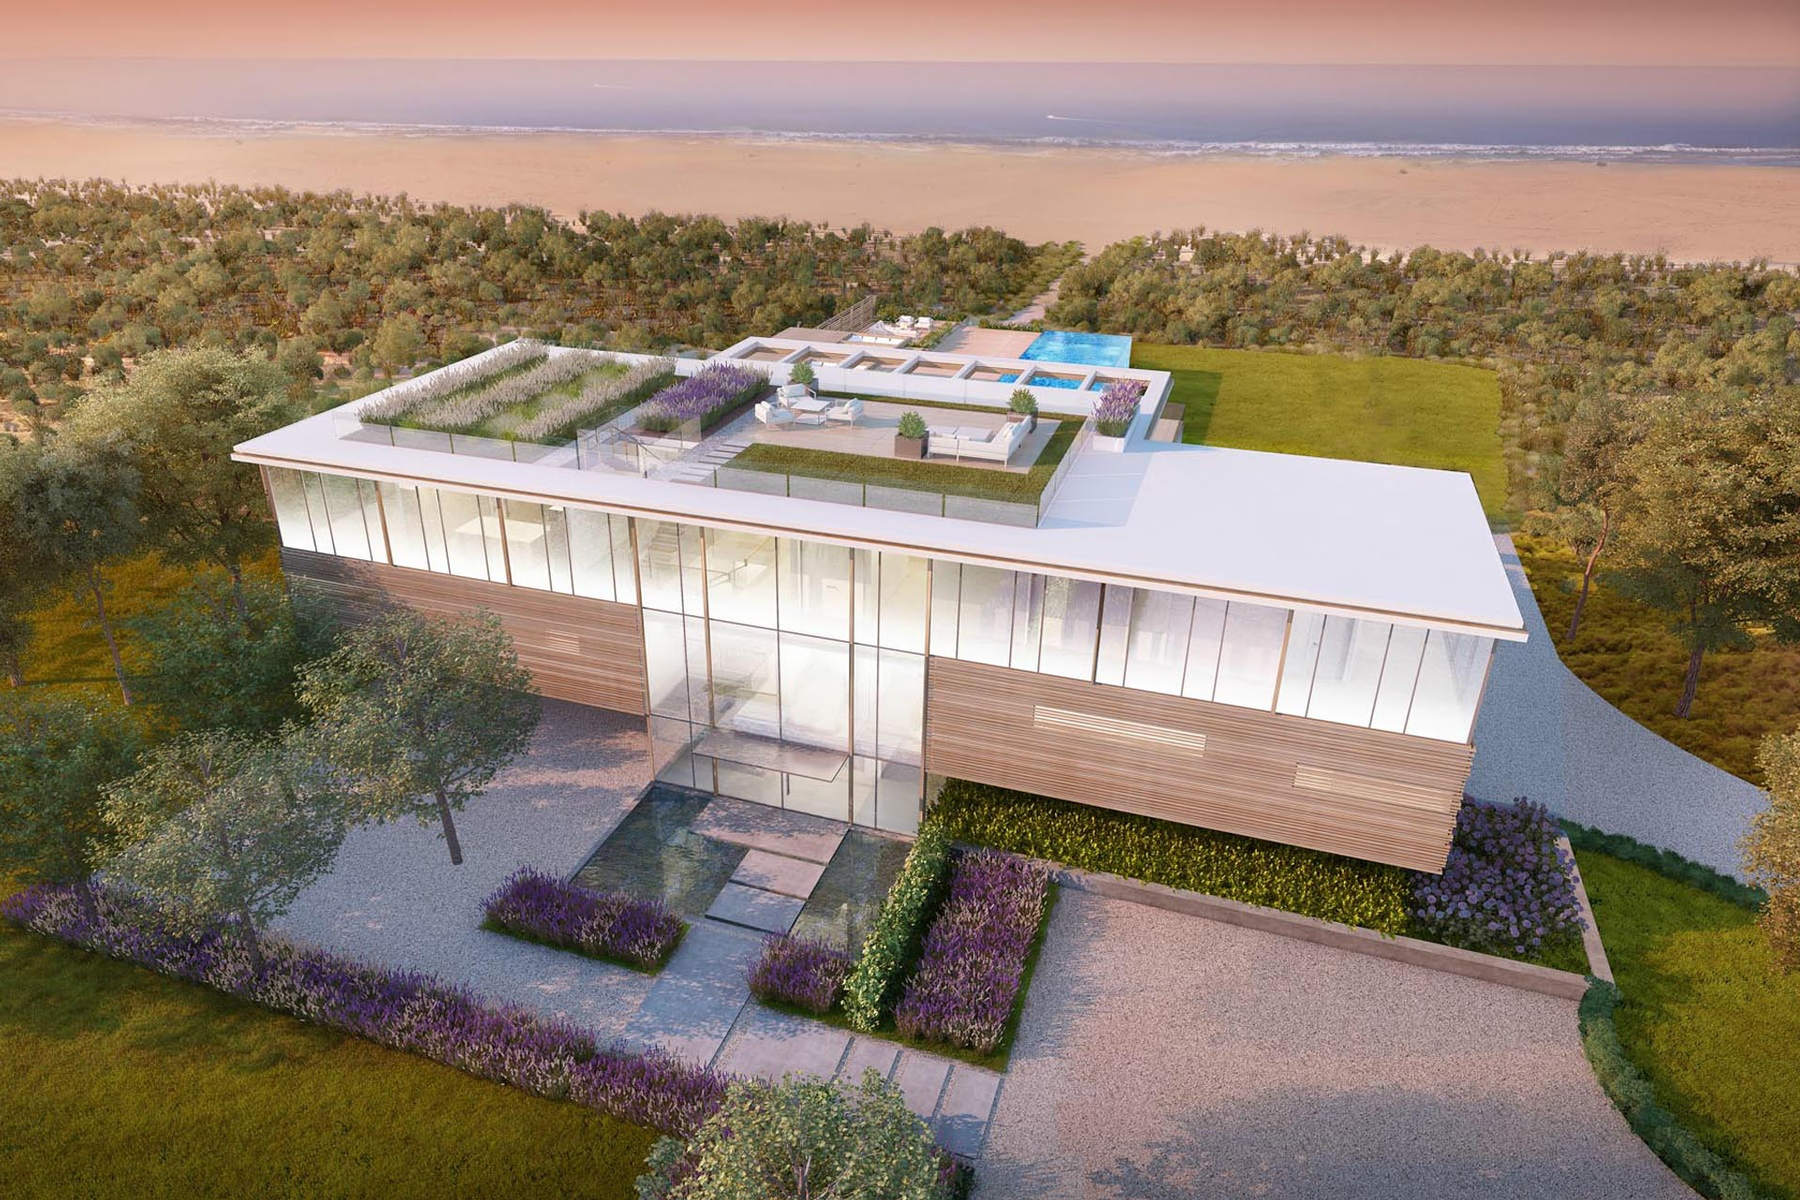 45m hamptons spec house is designed with transparent pool for Pool design hamptons